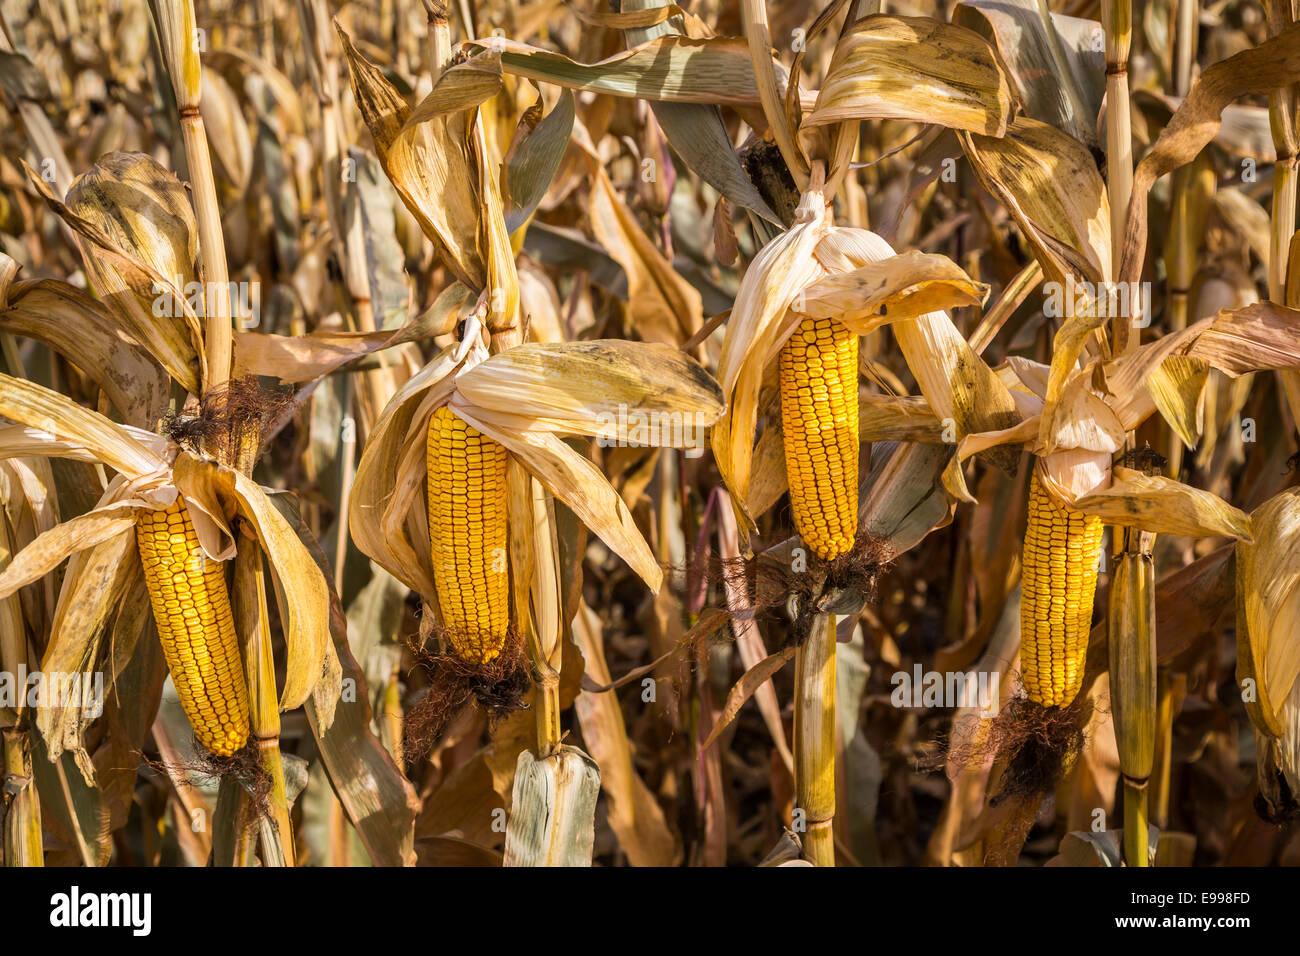 Closeup of cobs of corn at the 2014 harvest on the Froese farm near Winkler, Manitoba, Canada. - Stock Image